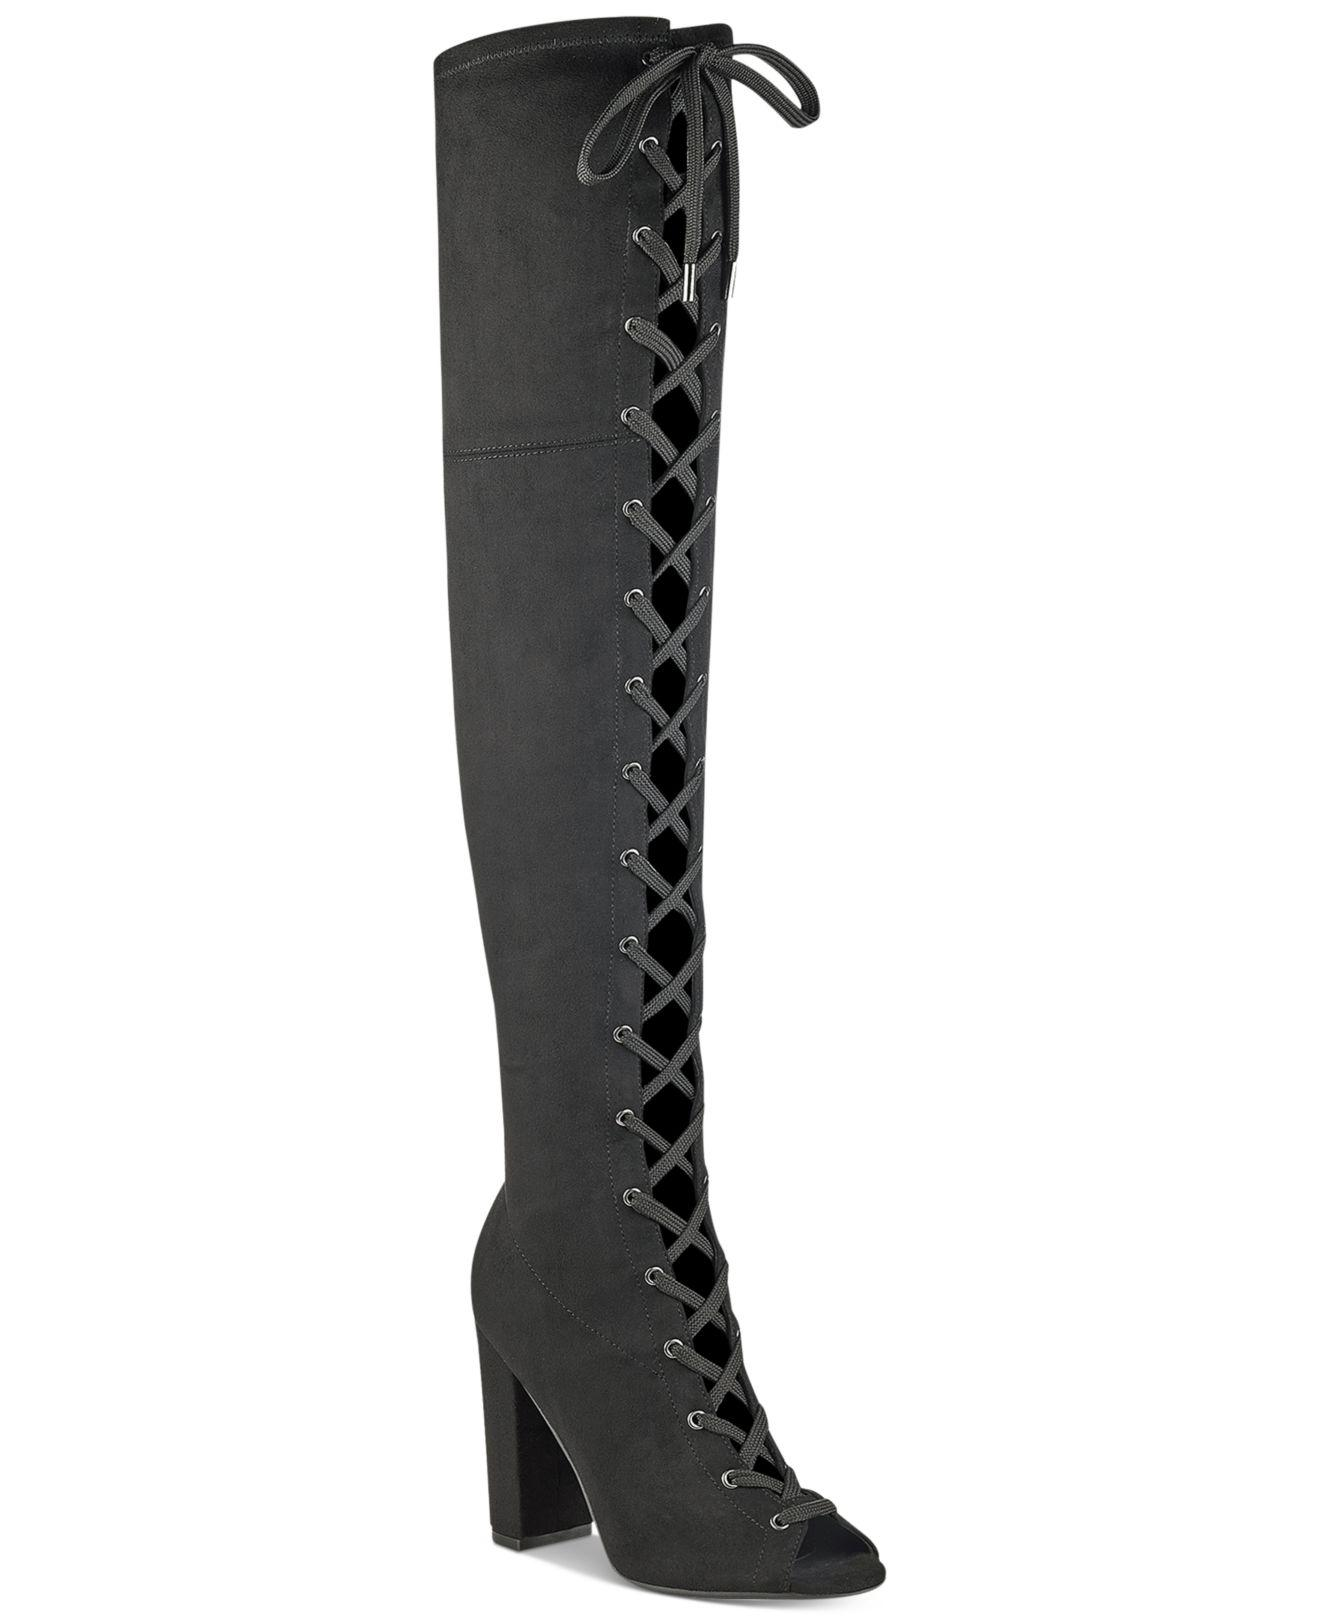 ea394988140 Lyst - Guess Women s Casidi Lace-up Over-the-knee Boots in Black